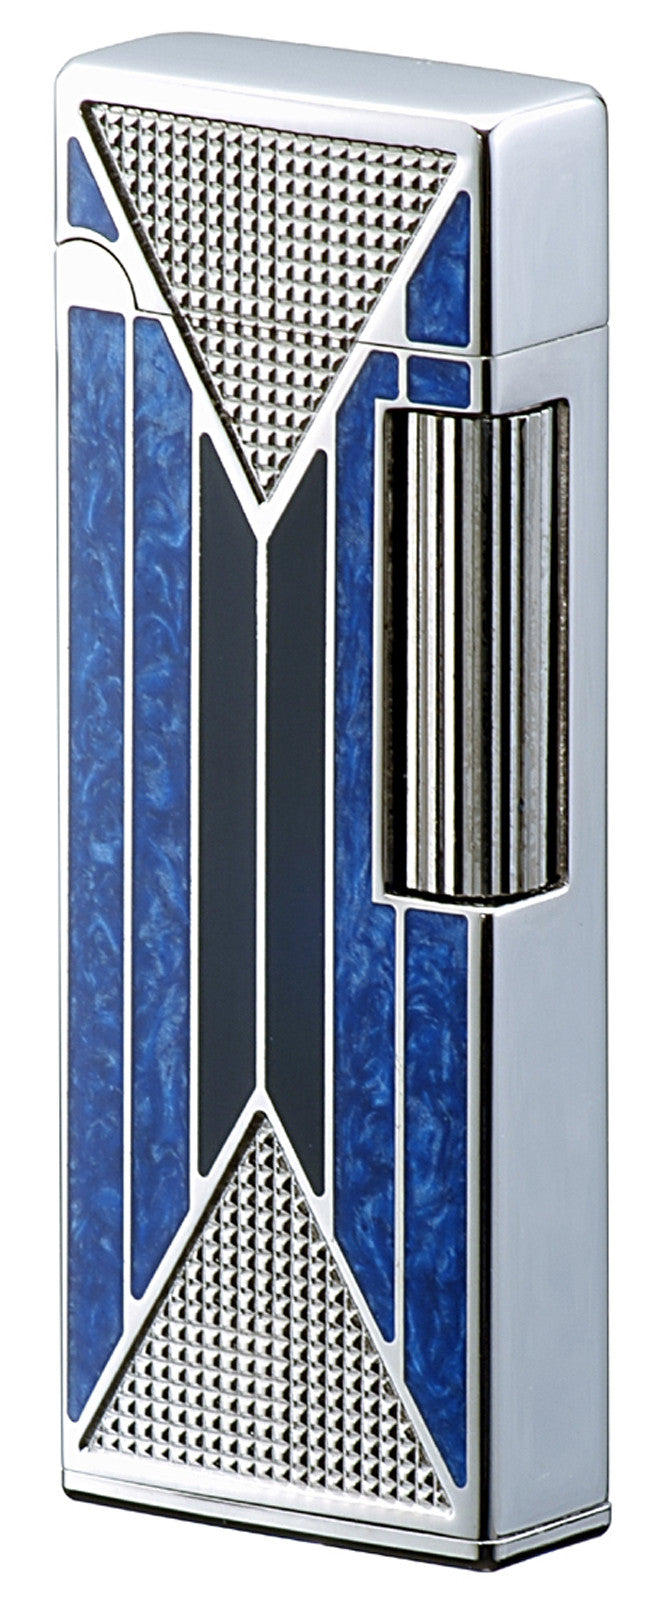 Sarome Flint Lighter SD9-21 Silver/2-tone blue& black epoxy resin inlaid